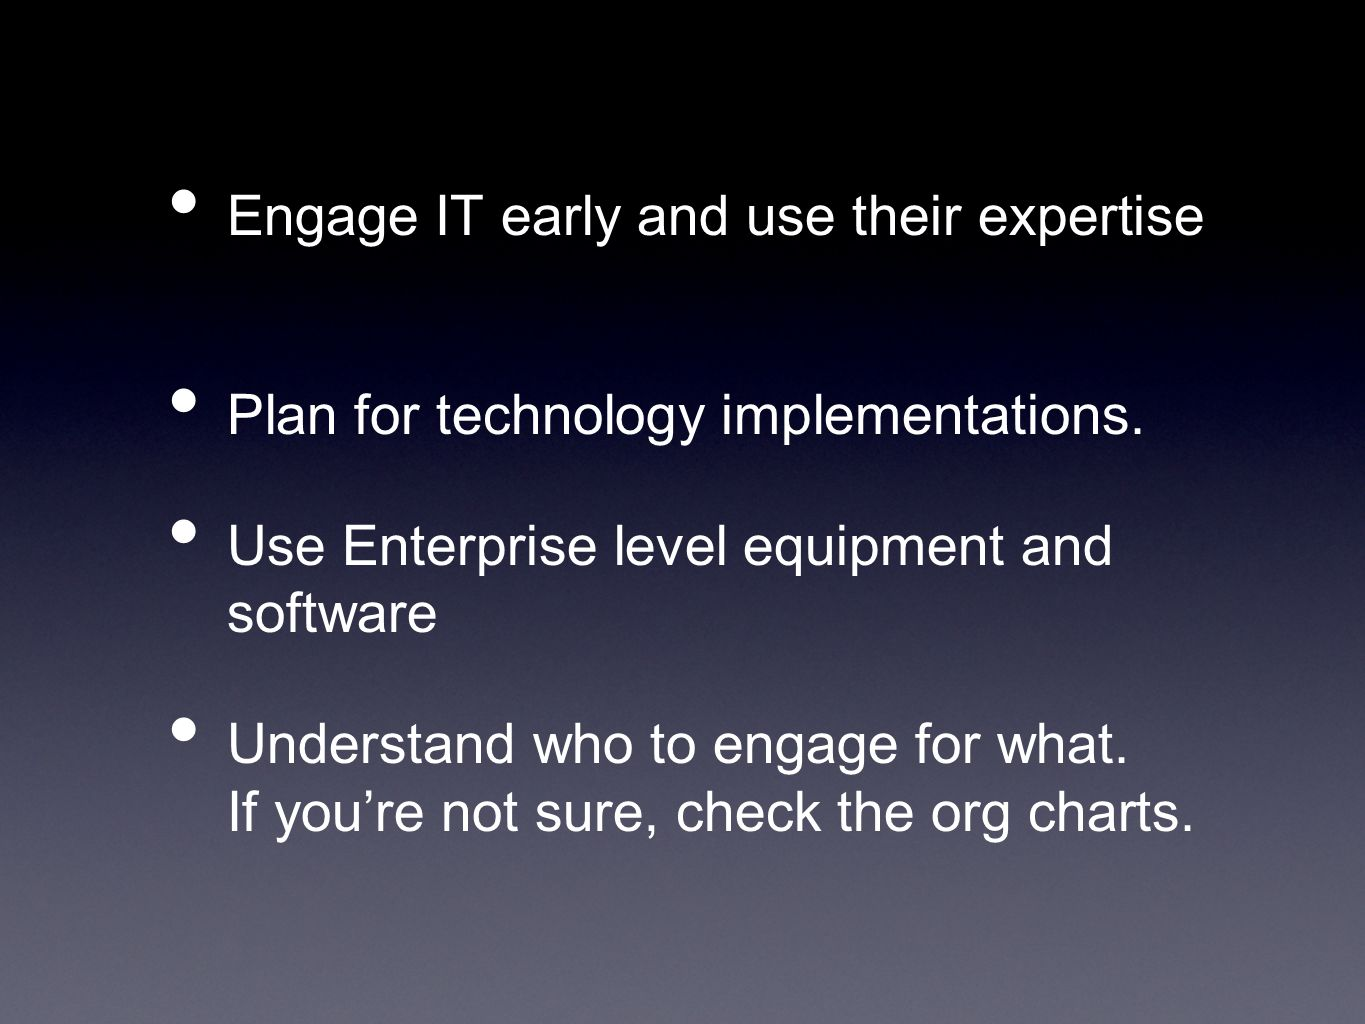 Engage IT early and use their expertise Plan for technology implementations.